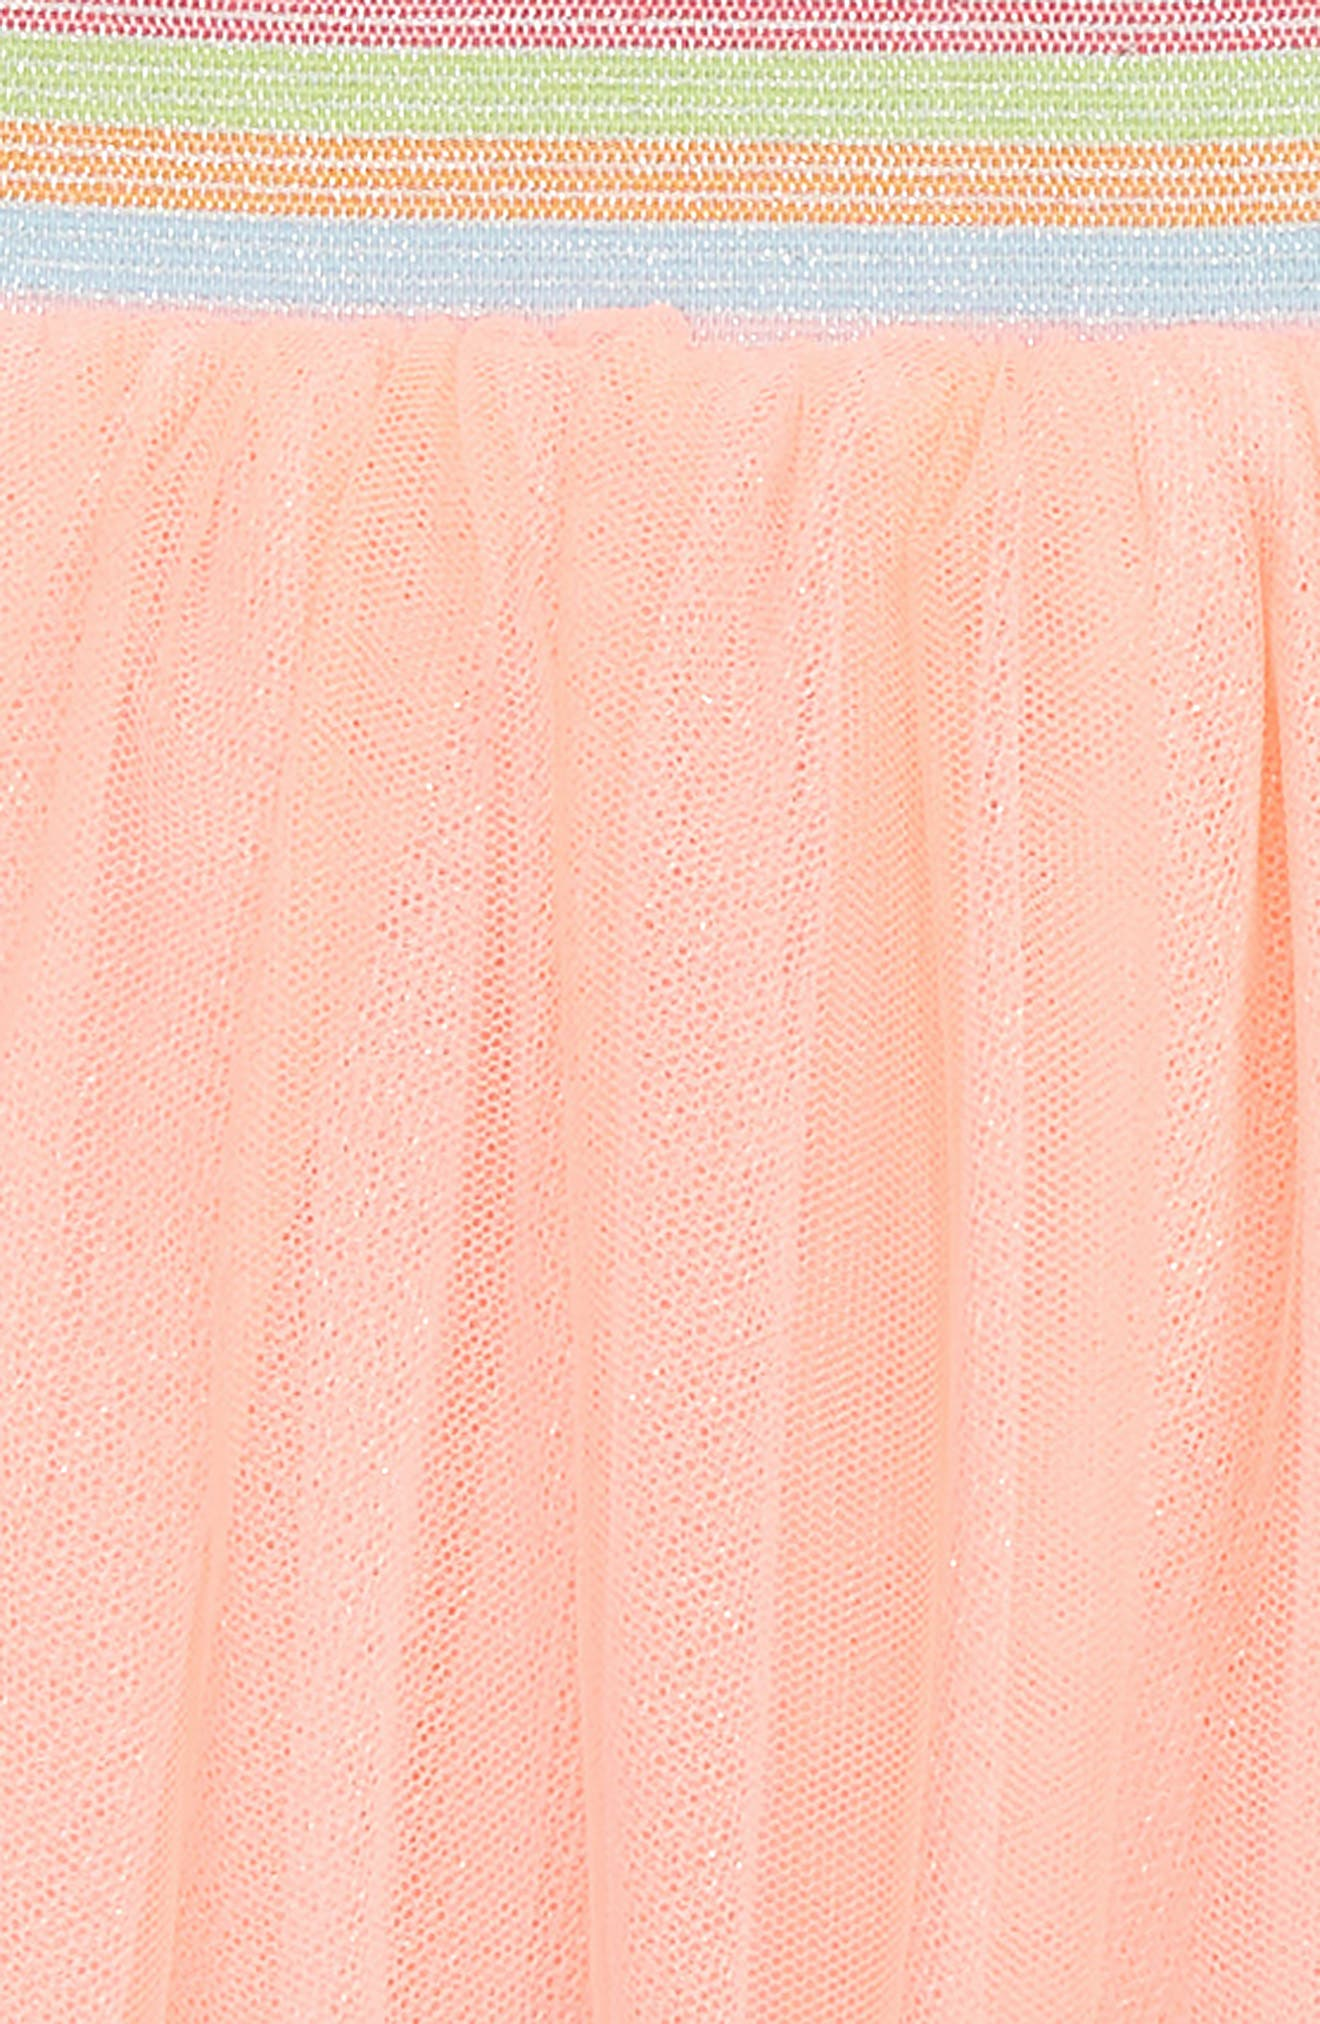 Fringed Hem Tutu Skirt,                             Alternate thumbnail 2, color,                             Orange